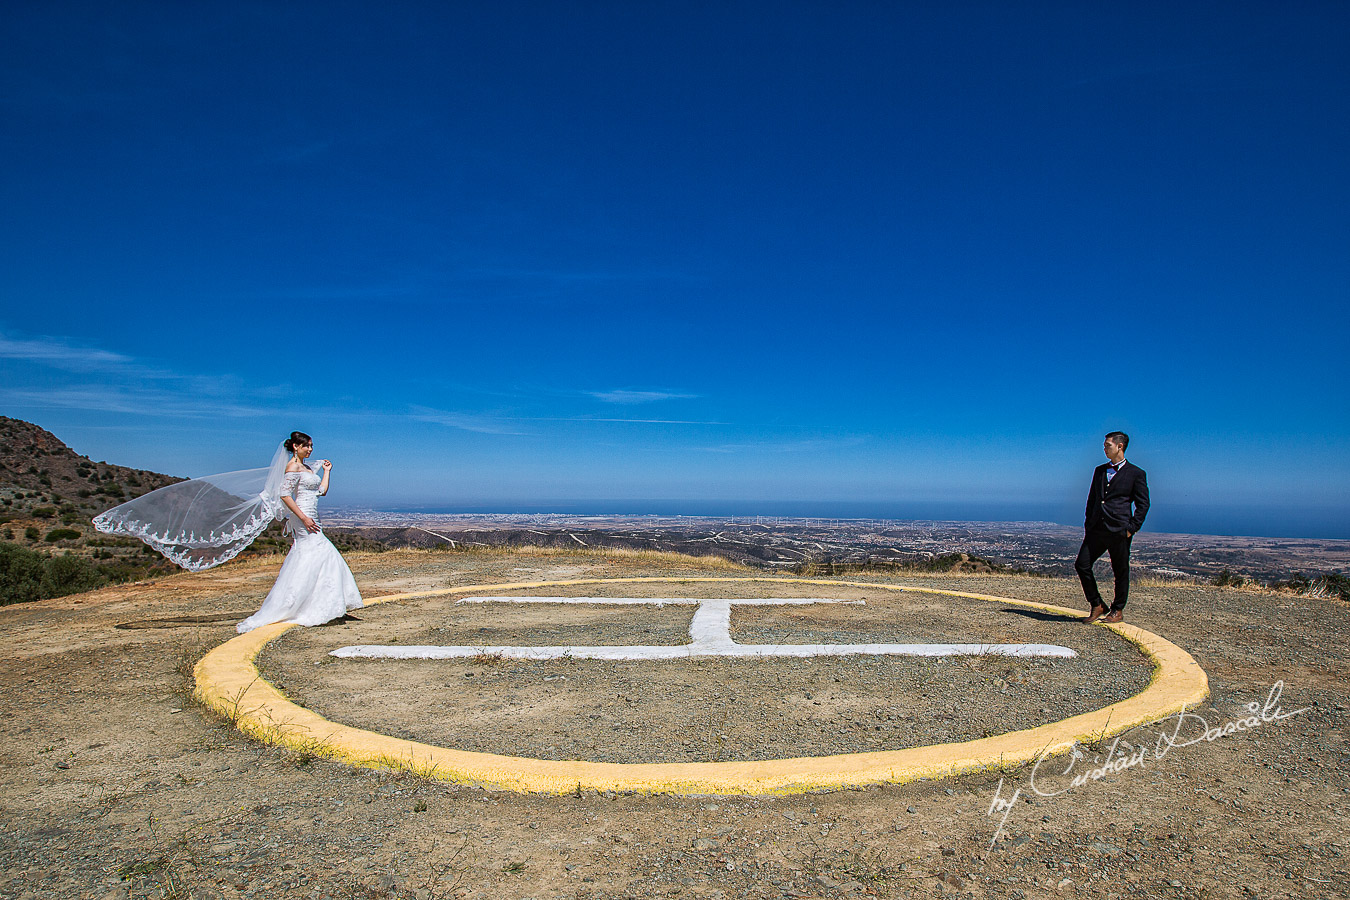 Pre-wedding Photography in Cyprus - 01